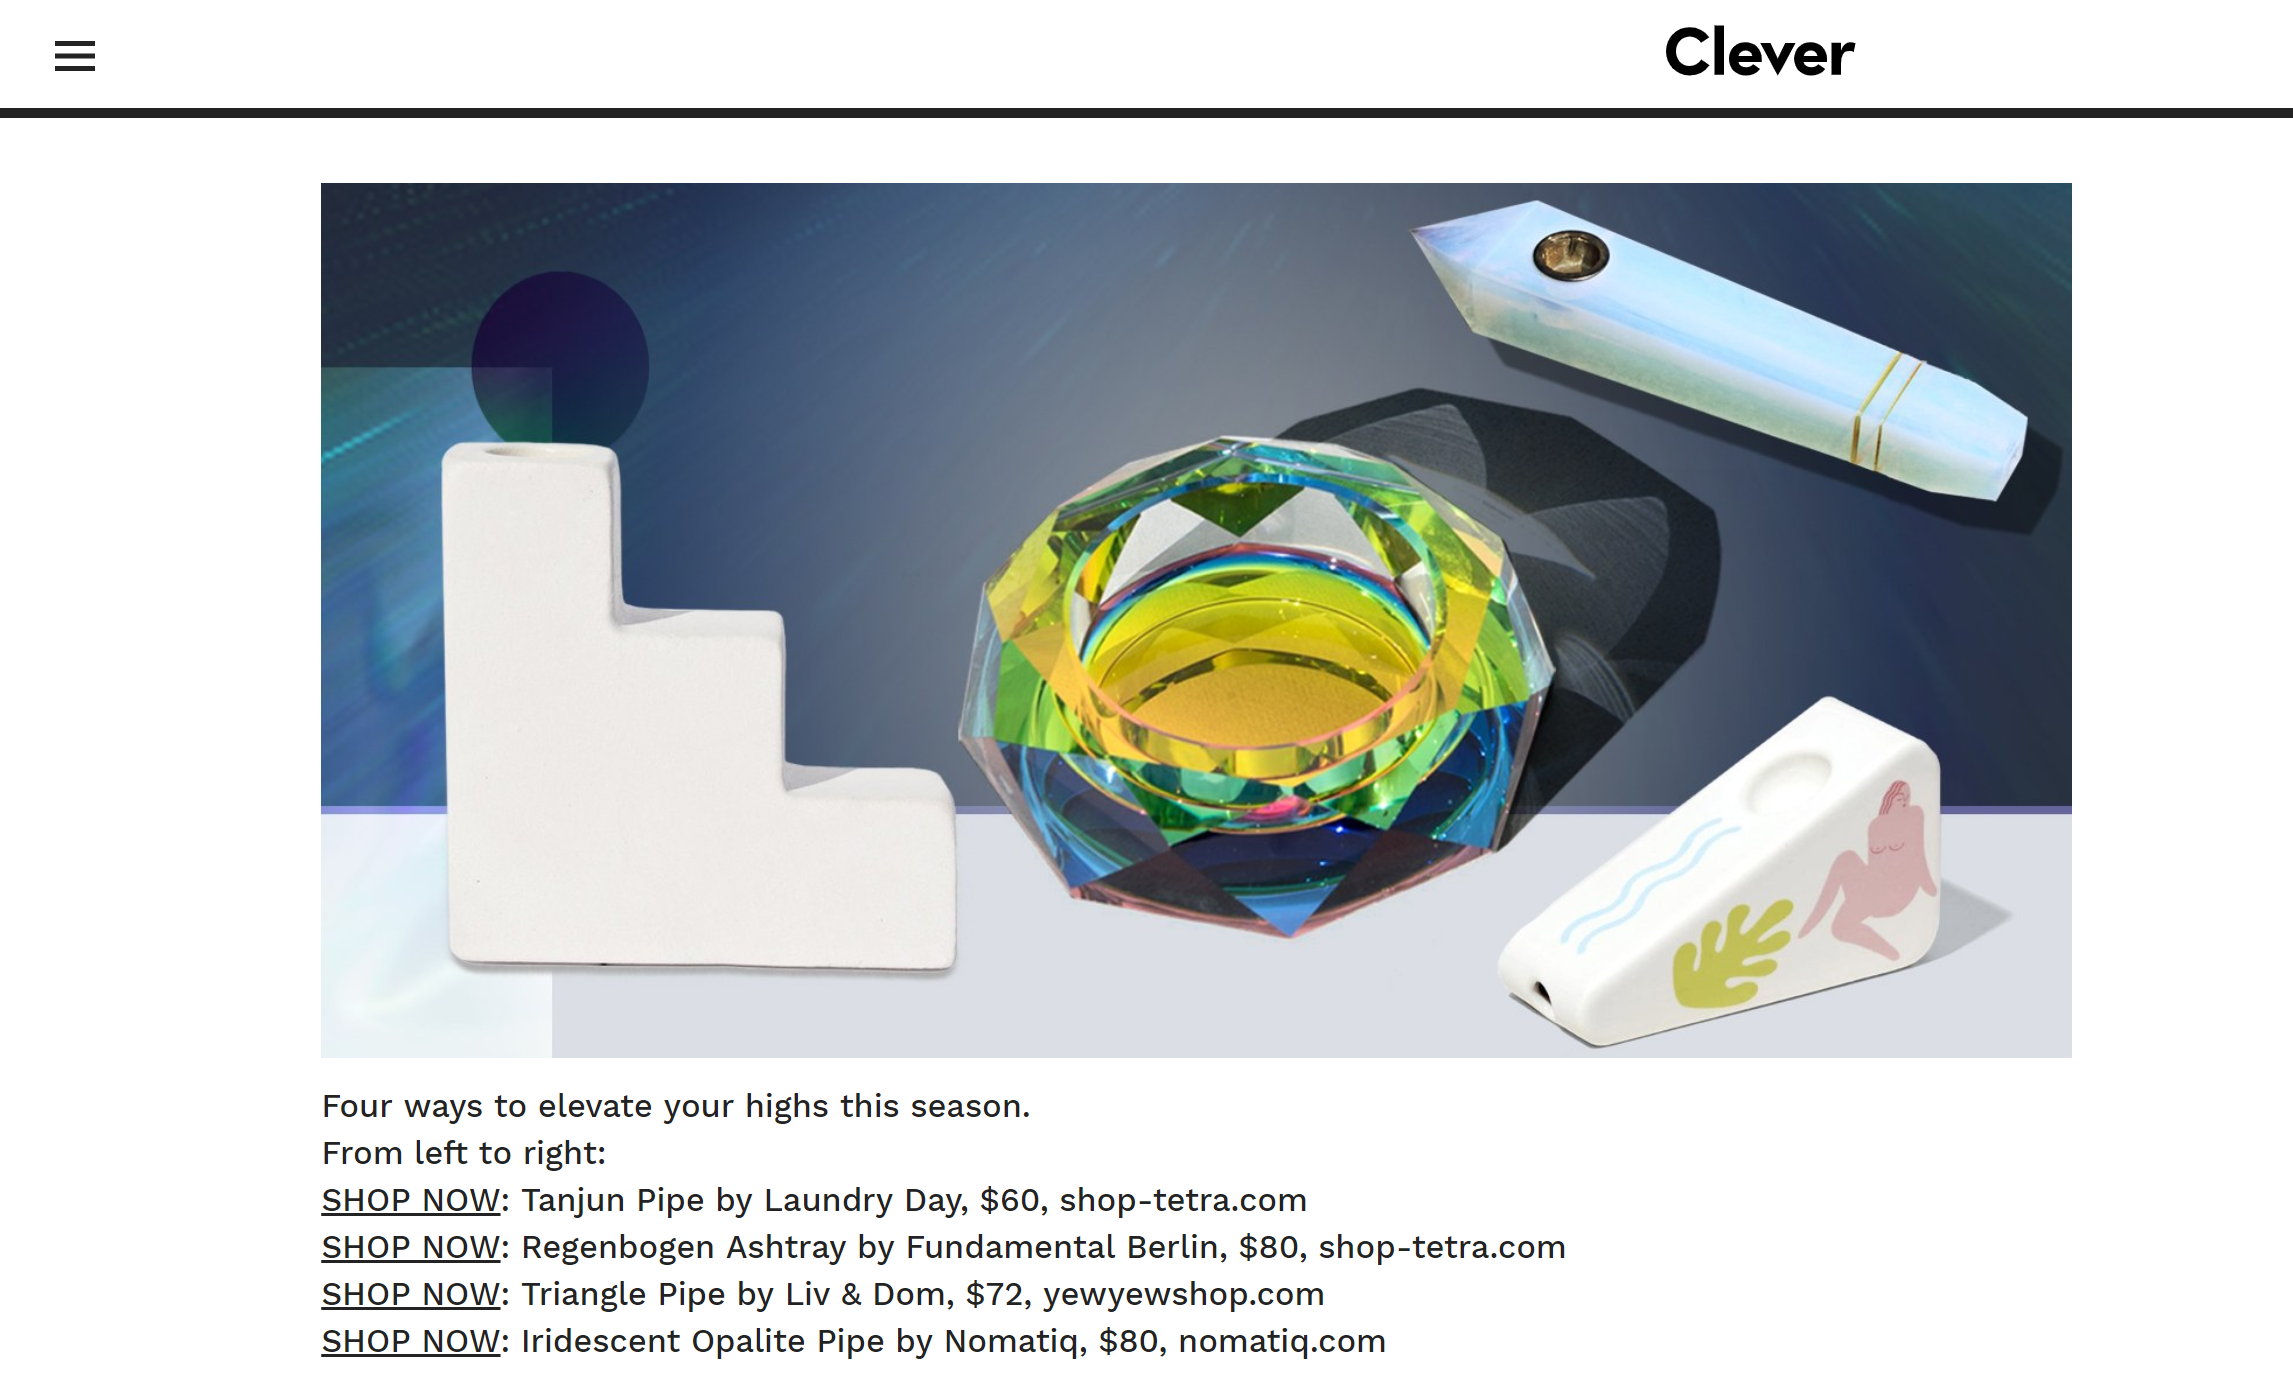 Nomatiq's Holiday Feature - In Clever, from Architectural Digestclick here to see the full article